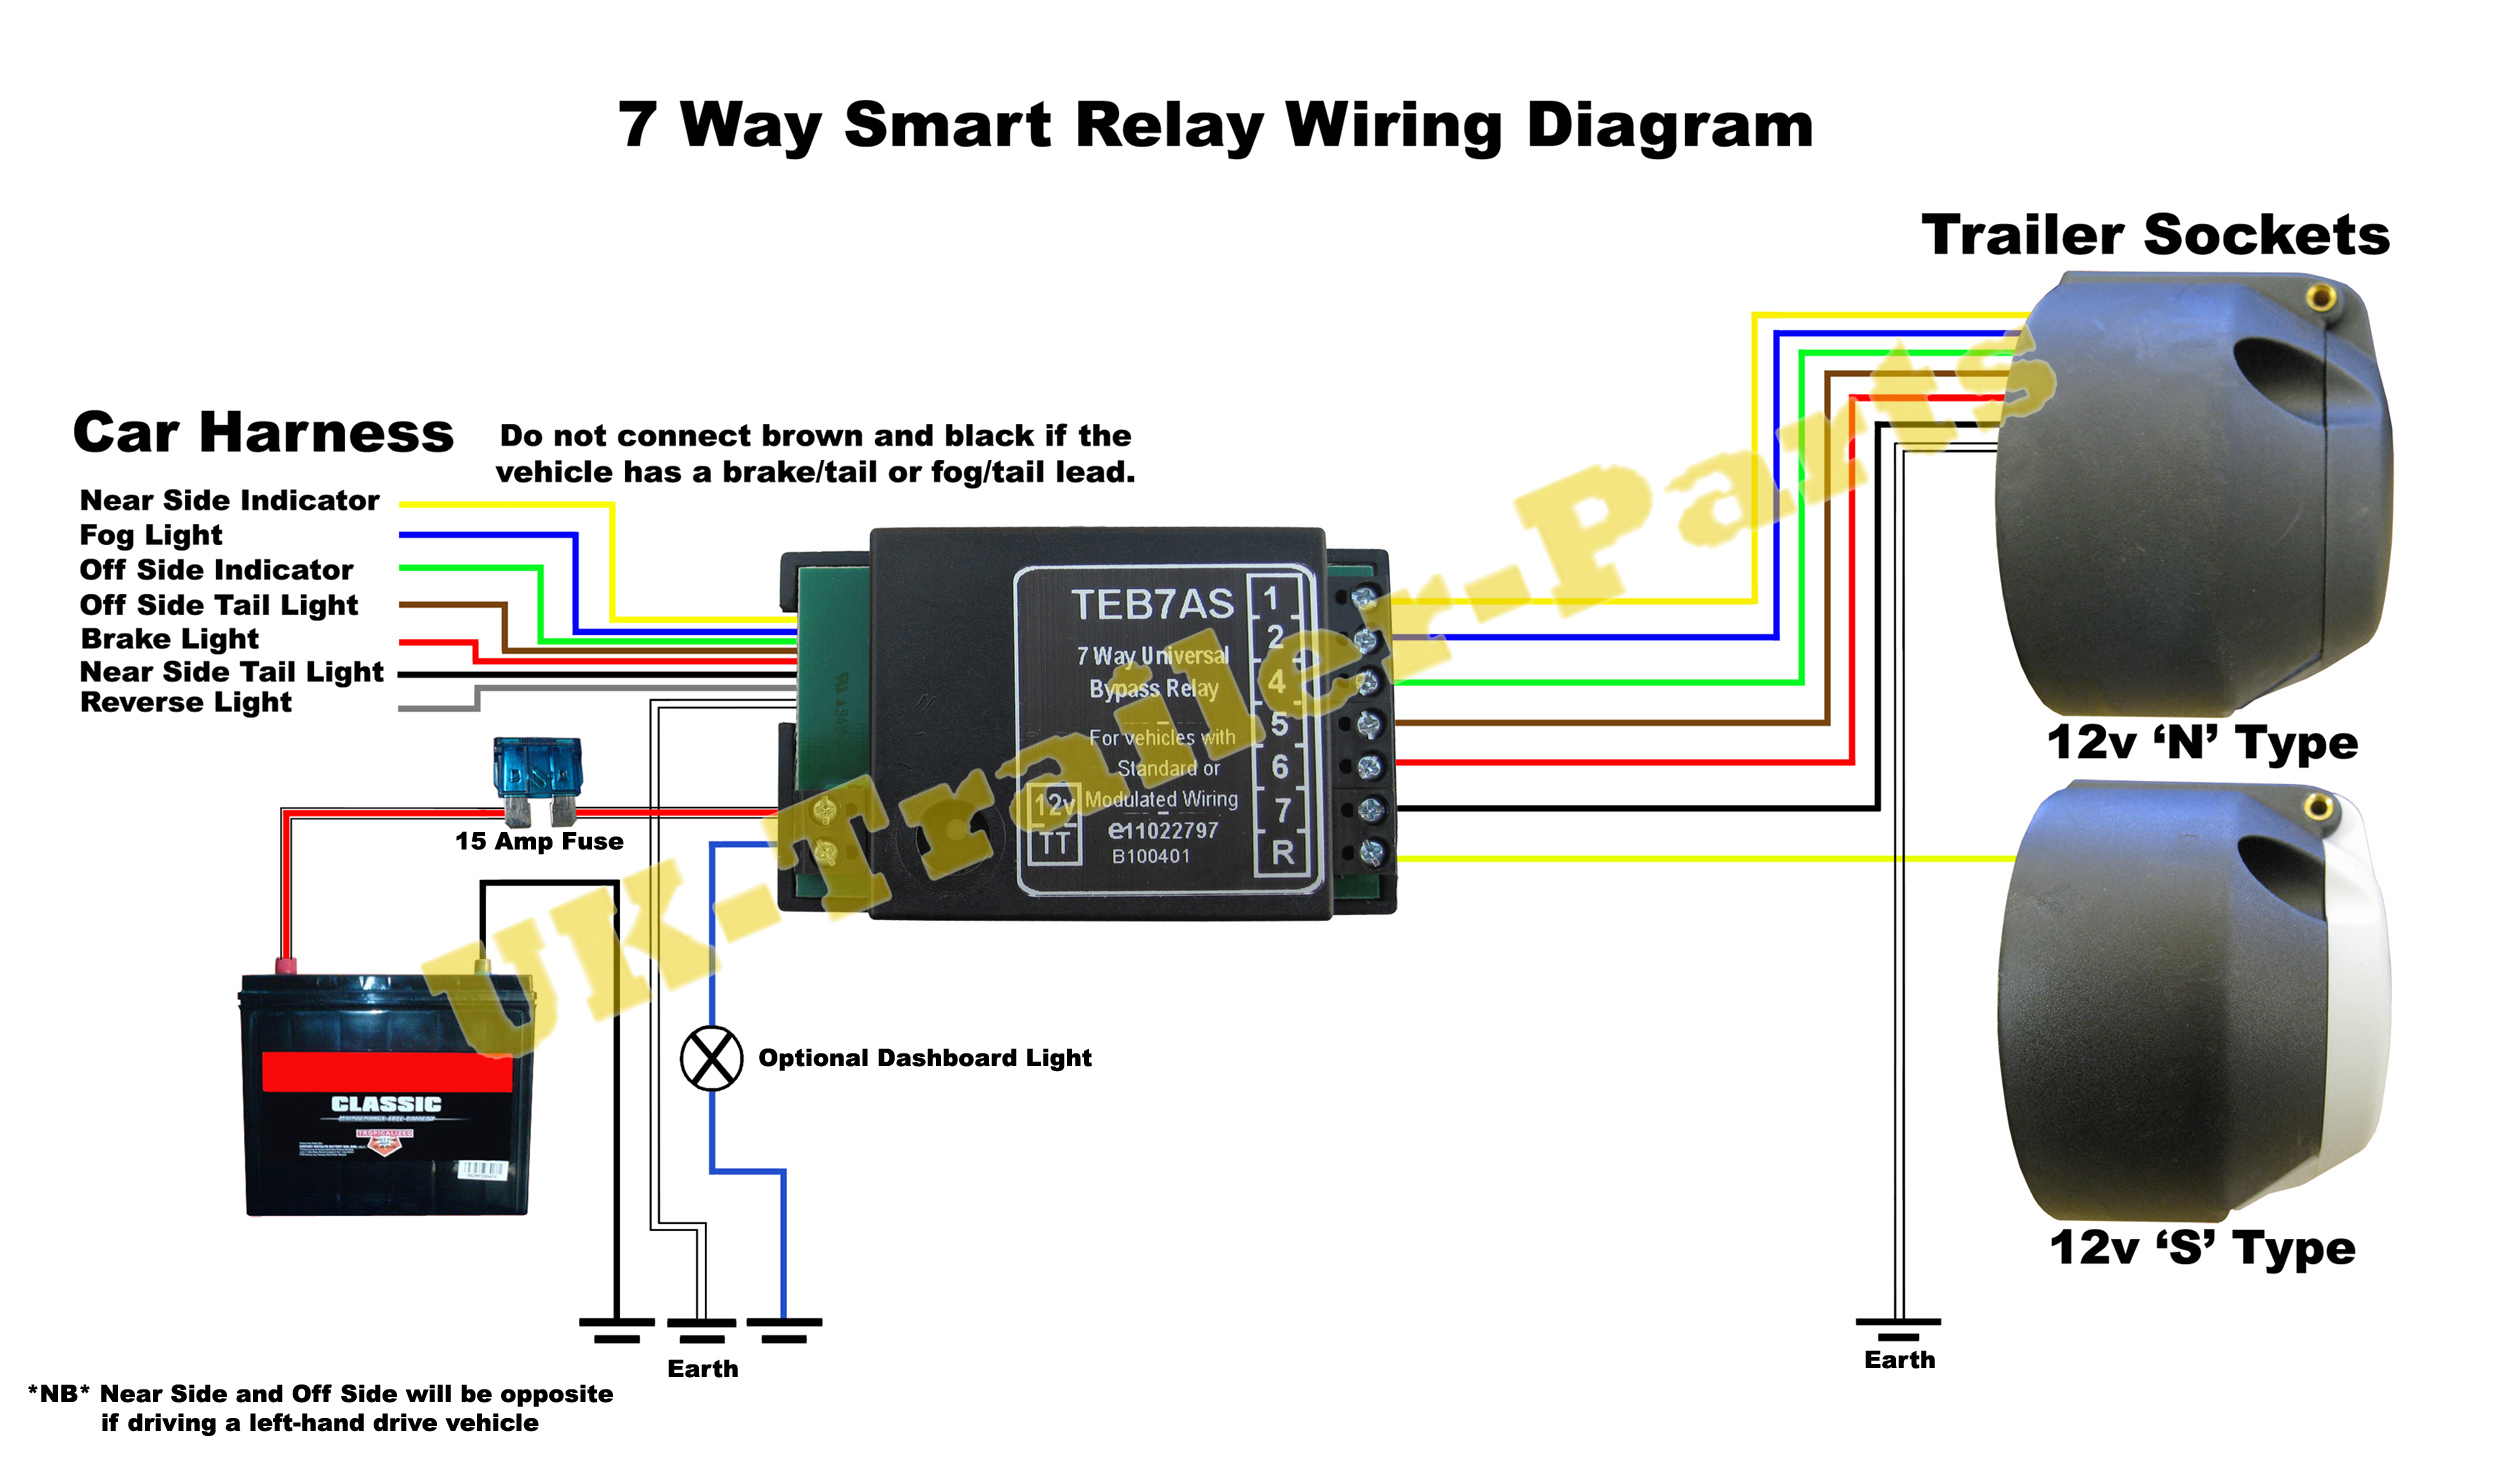 smart relay wiring diagram2 7 way universal bypass relay wiring diagram uk trailer parts vw t5 rear light wiring diagram at reclaimingppi.co